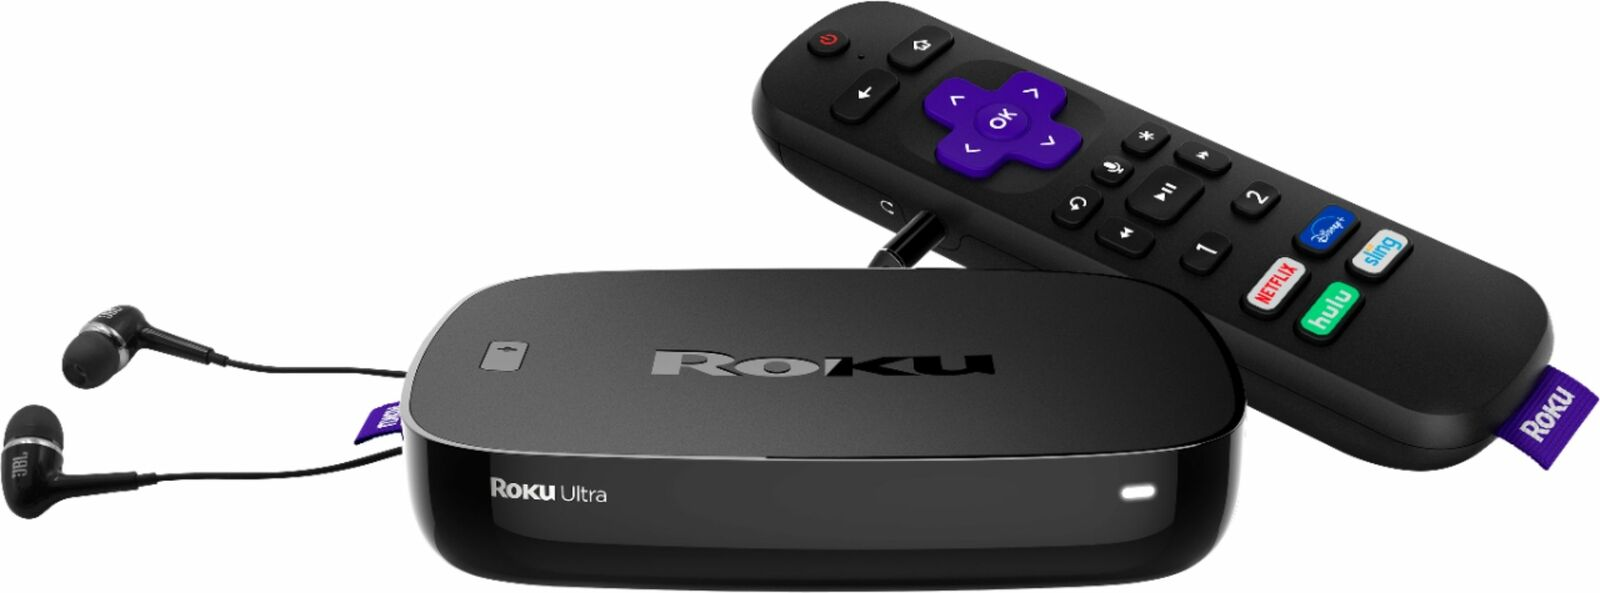 Brand New Roku Ultra Streaming Media Player 4K/HDR with Premium JBL Headphones brand jbl media new player premium roku streaming ultra with